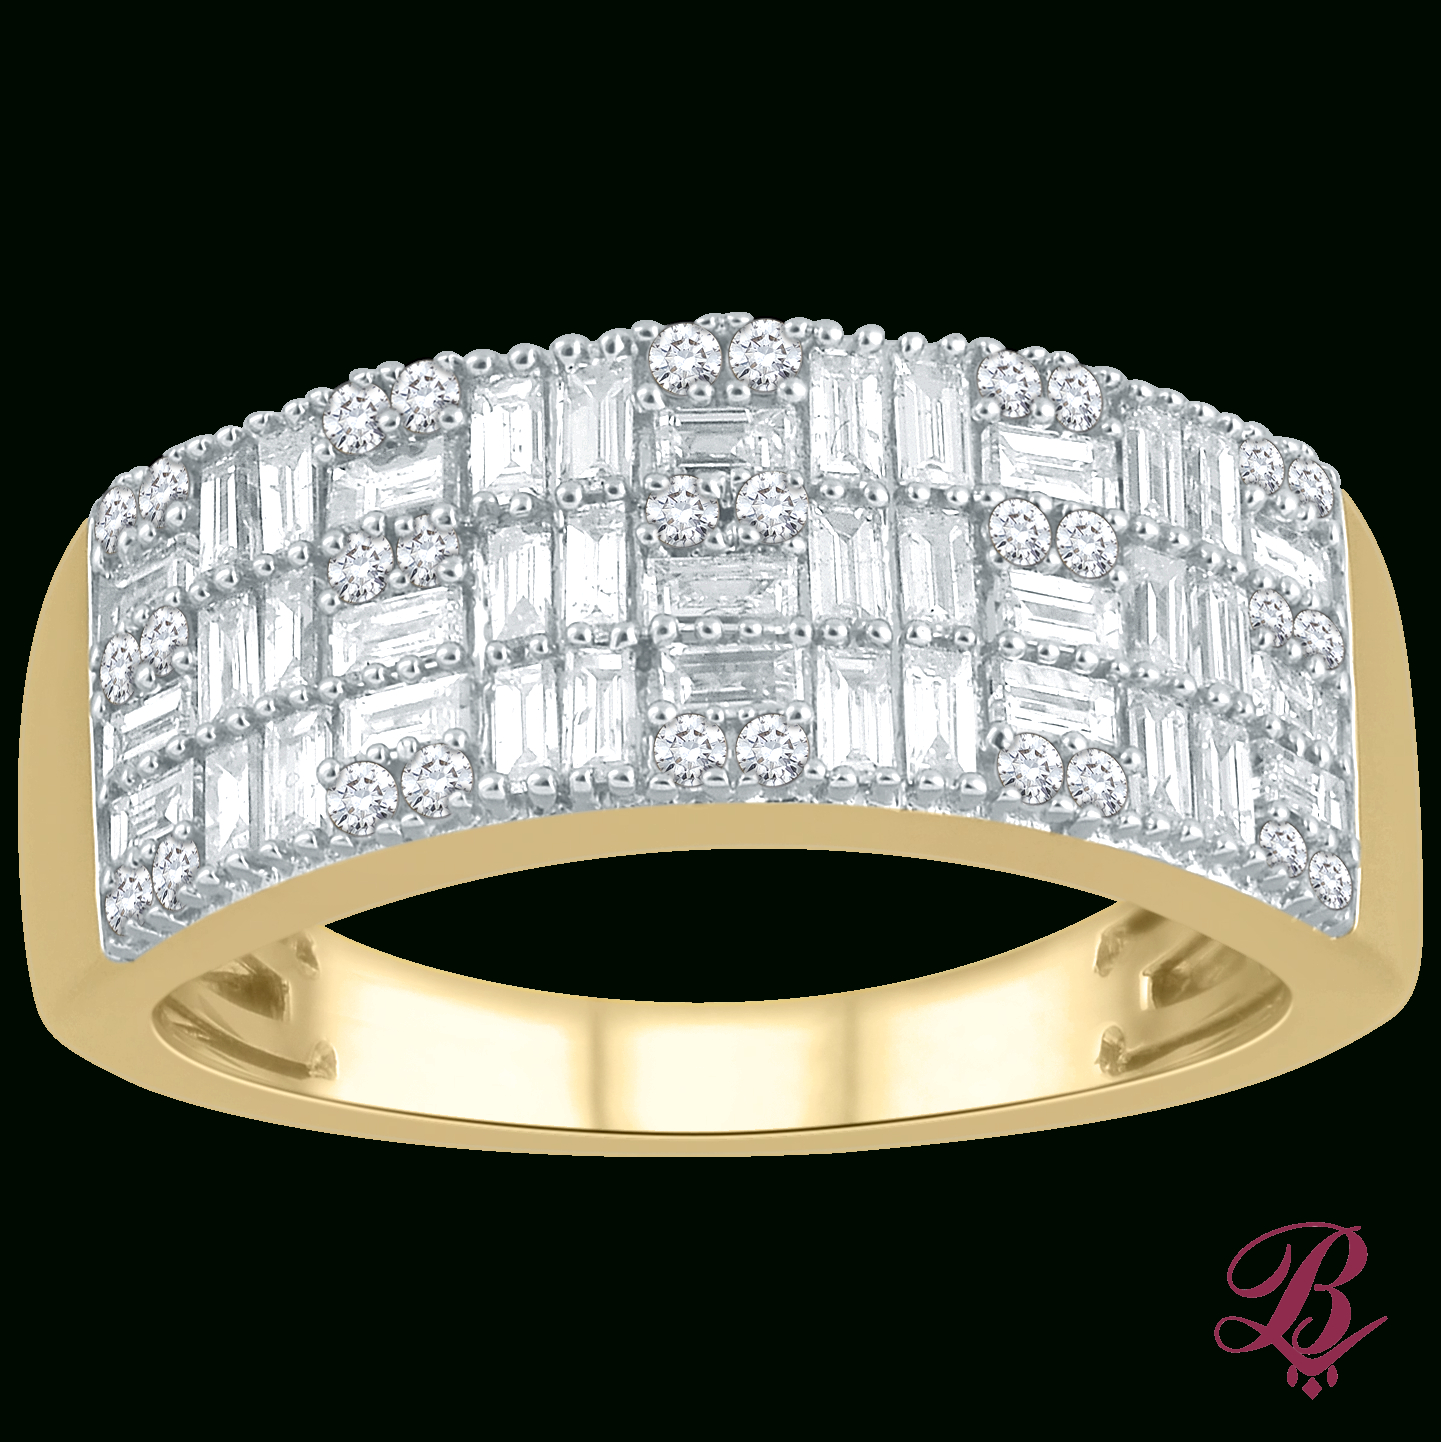 Baguette & Round Diamond Ring – Bombay Jewels Within Best And Newest Baguette And Round Diamond Multi Row Anniversary Ring In White Gold (View 7 of 25)